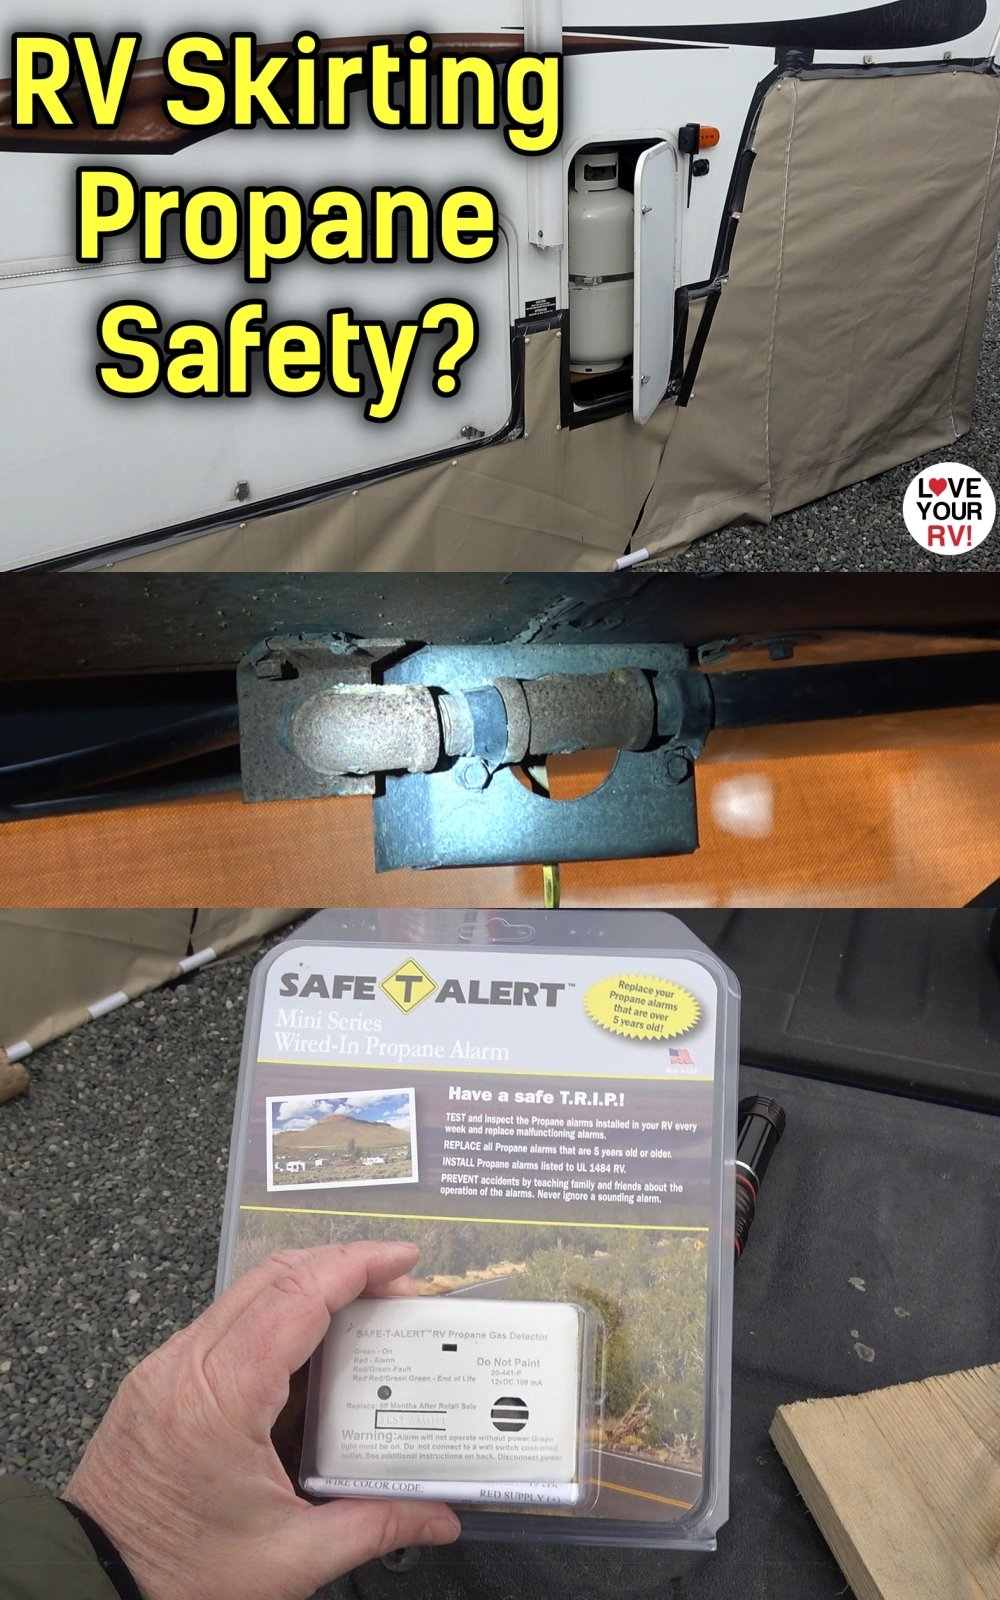 RV Winter Skirting and Propane Safety Concerns